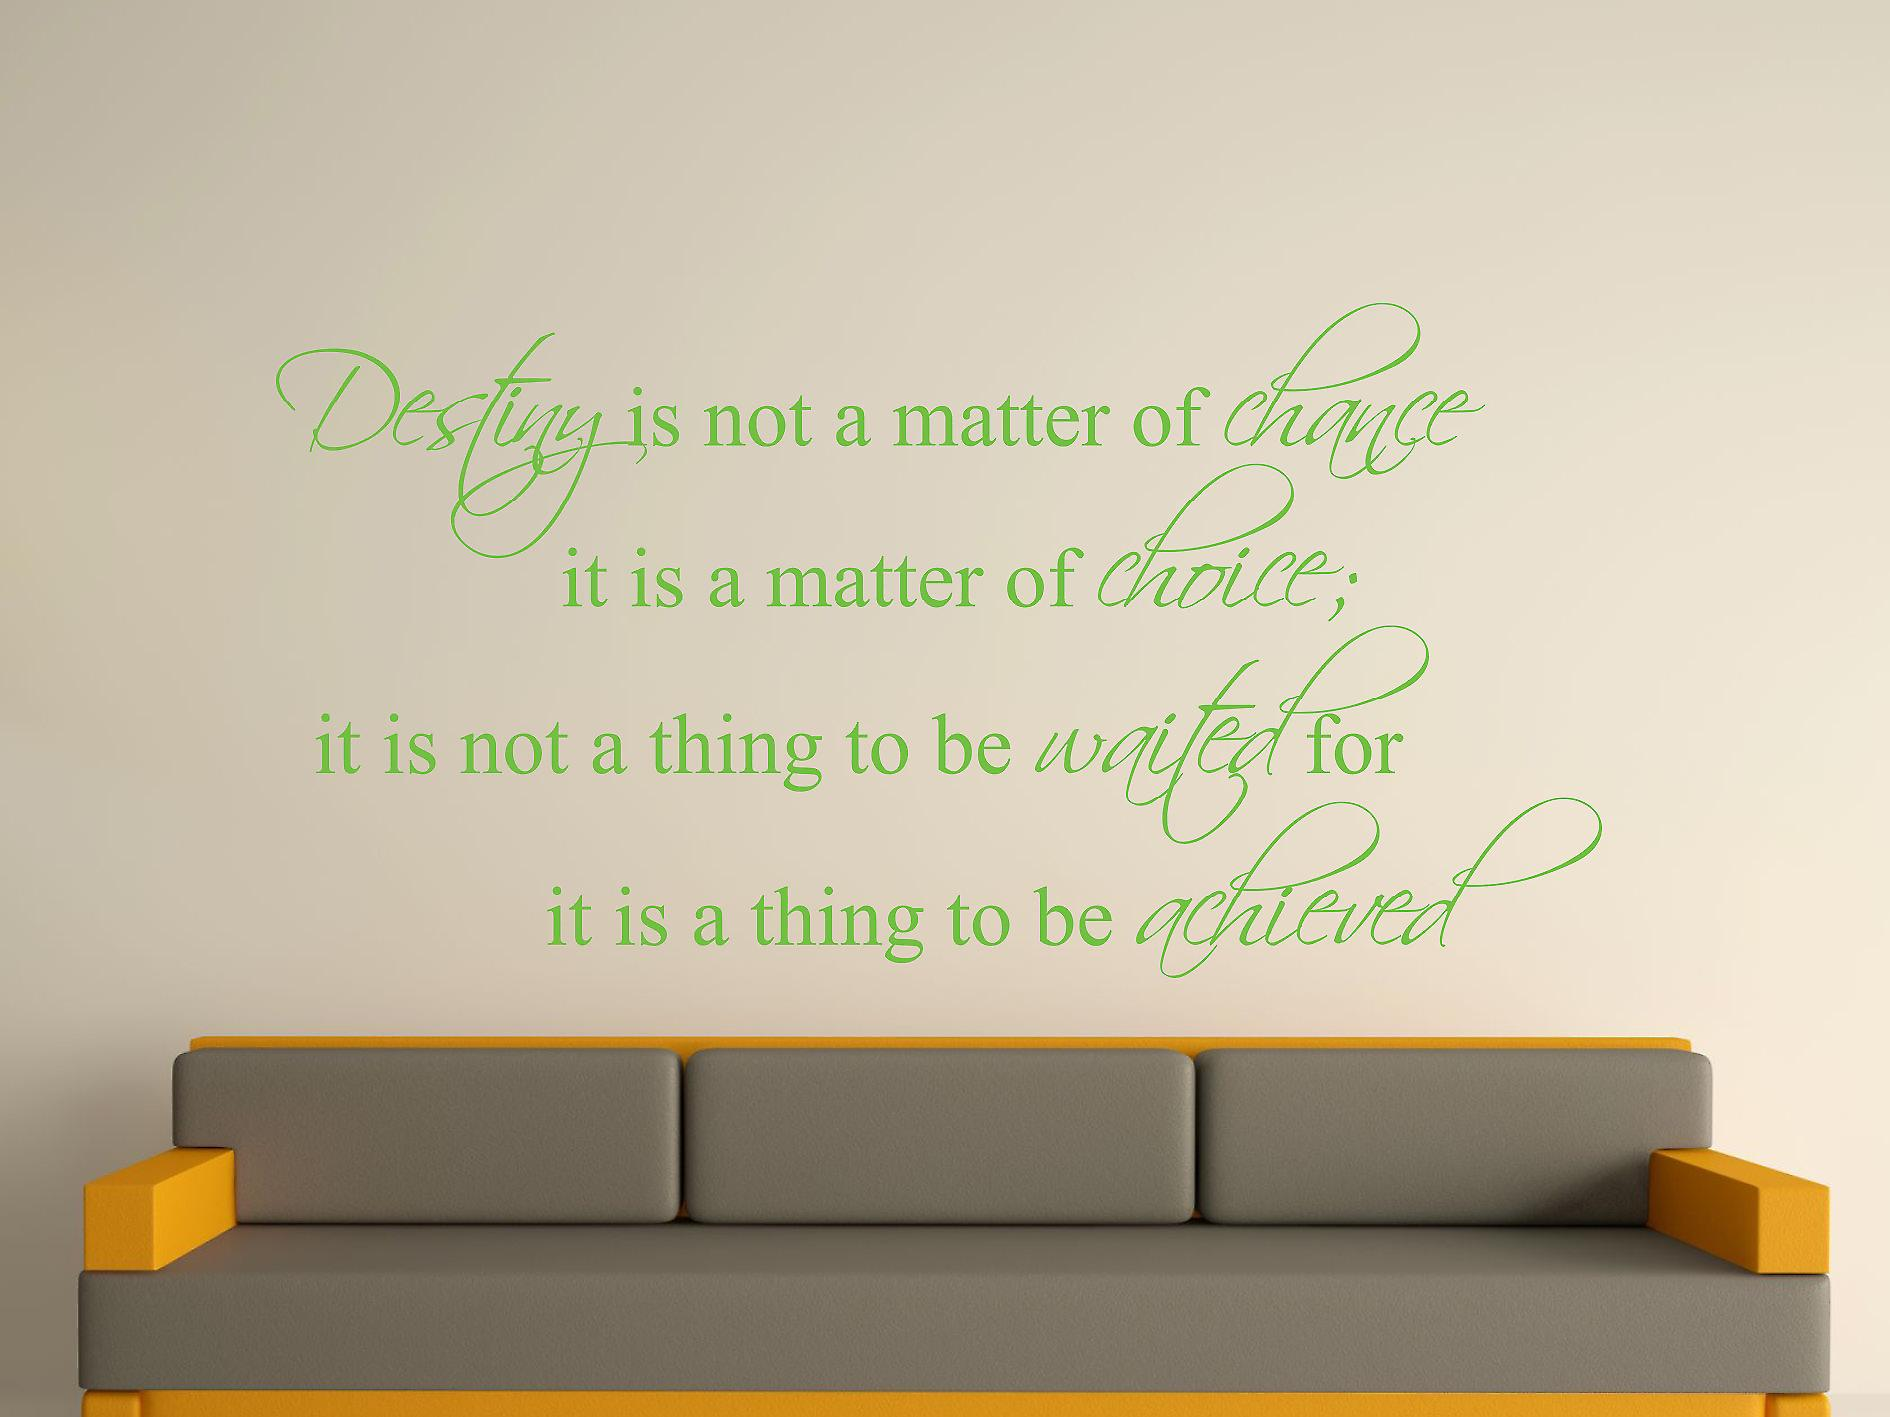 Destiny Is Not A Matter of Chance Wall Art Sticker - Apple Green